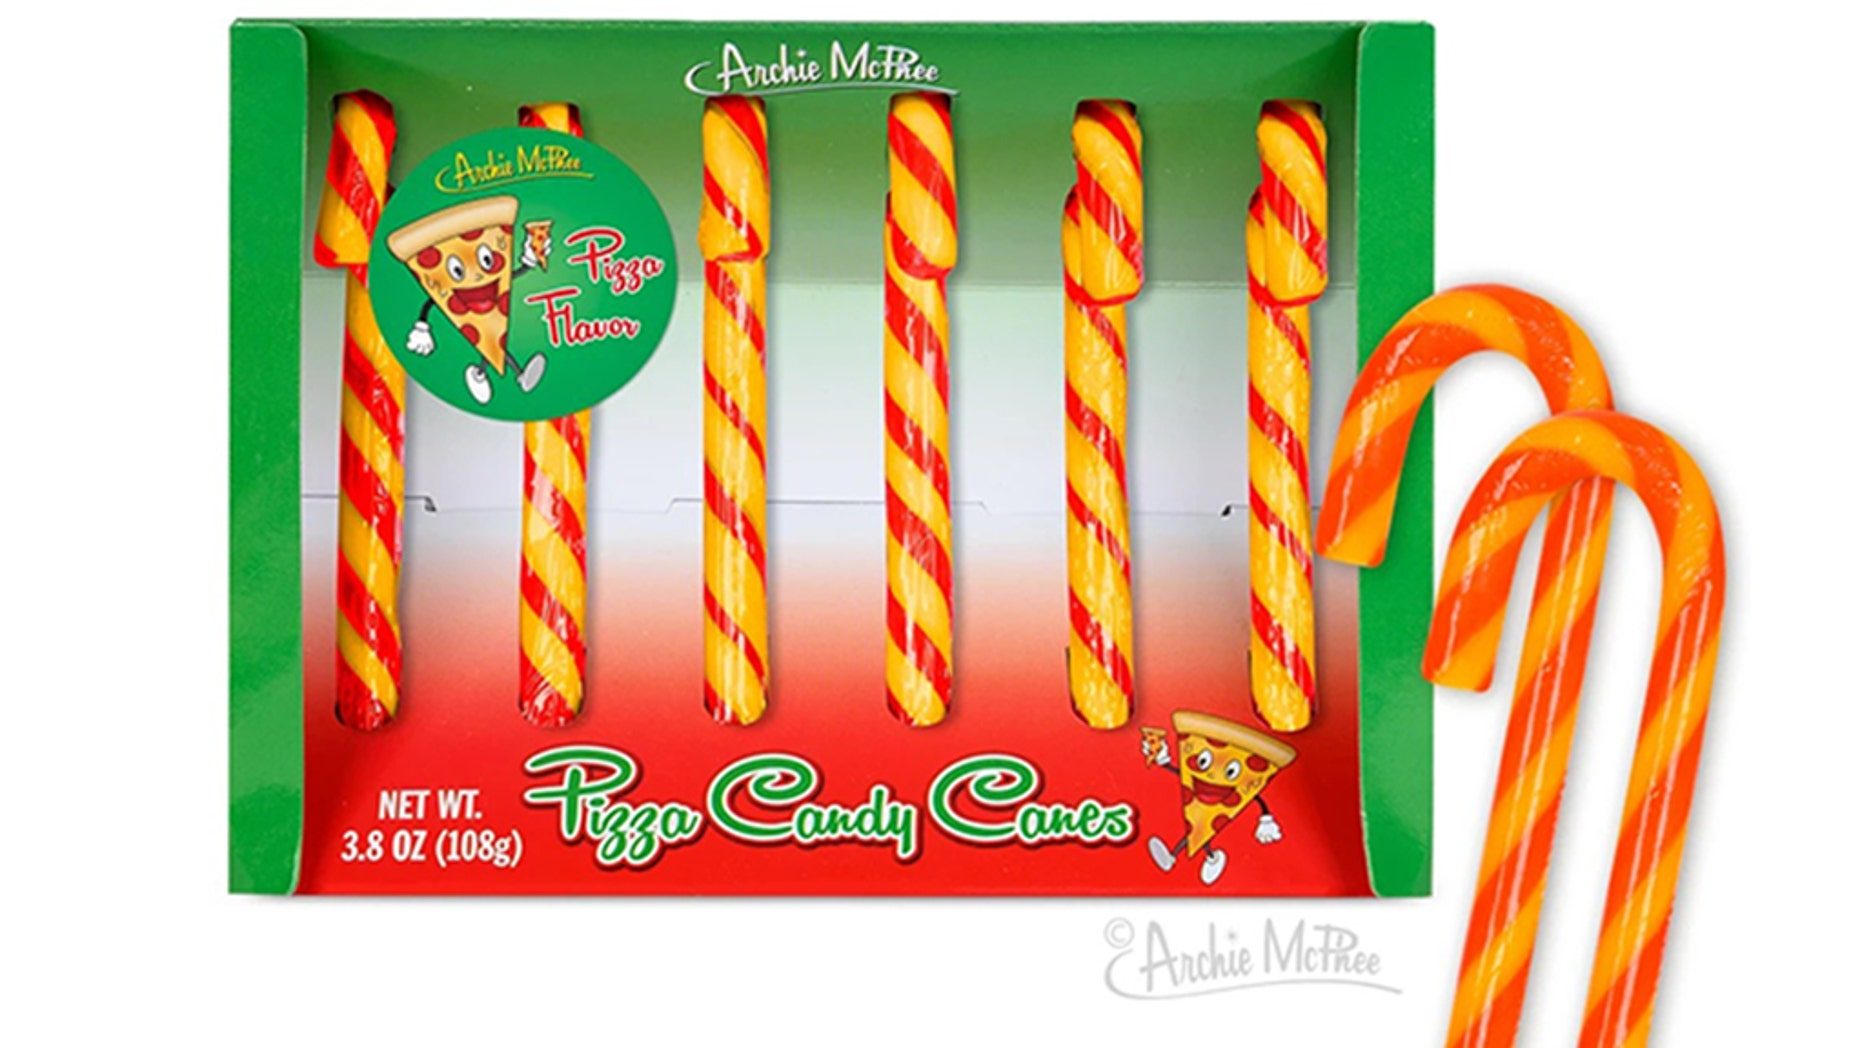 It's not even Halloween yet, but apparently some retailers are already promoting Christmas-themed treats.